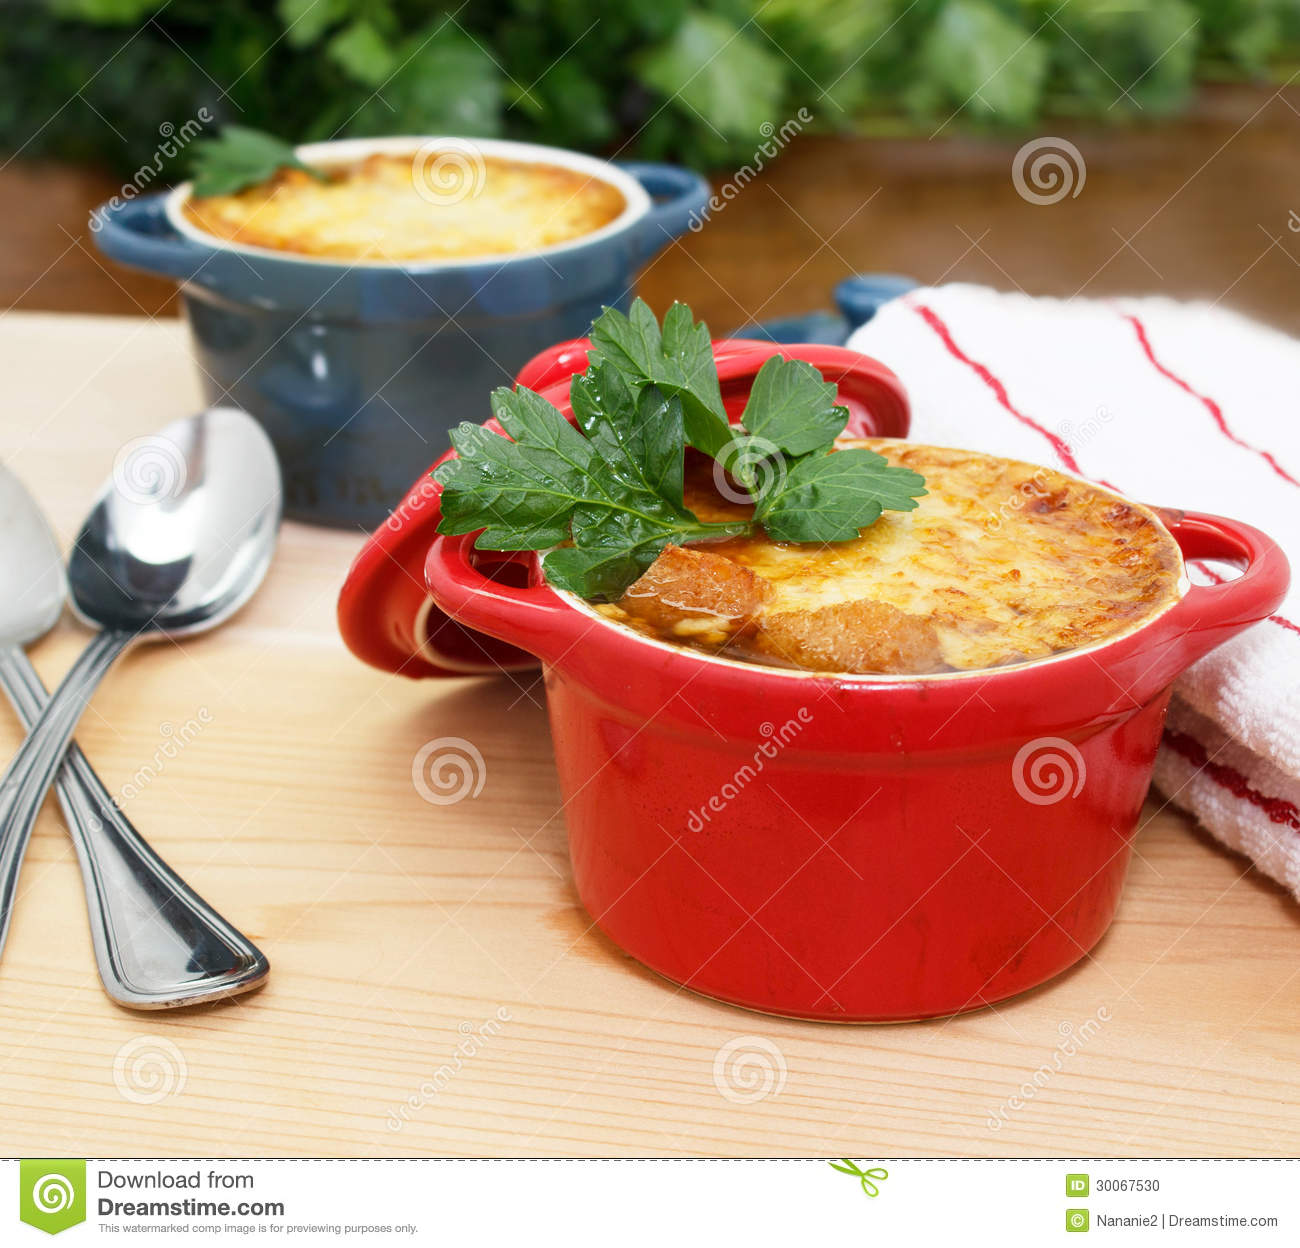 French Onion Soup Gratin in red and blue pots on table top.